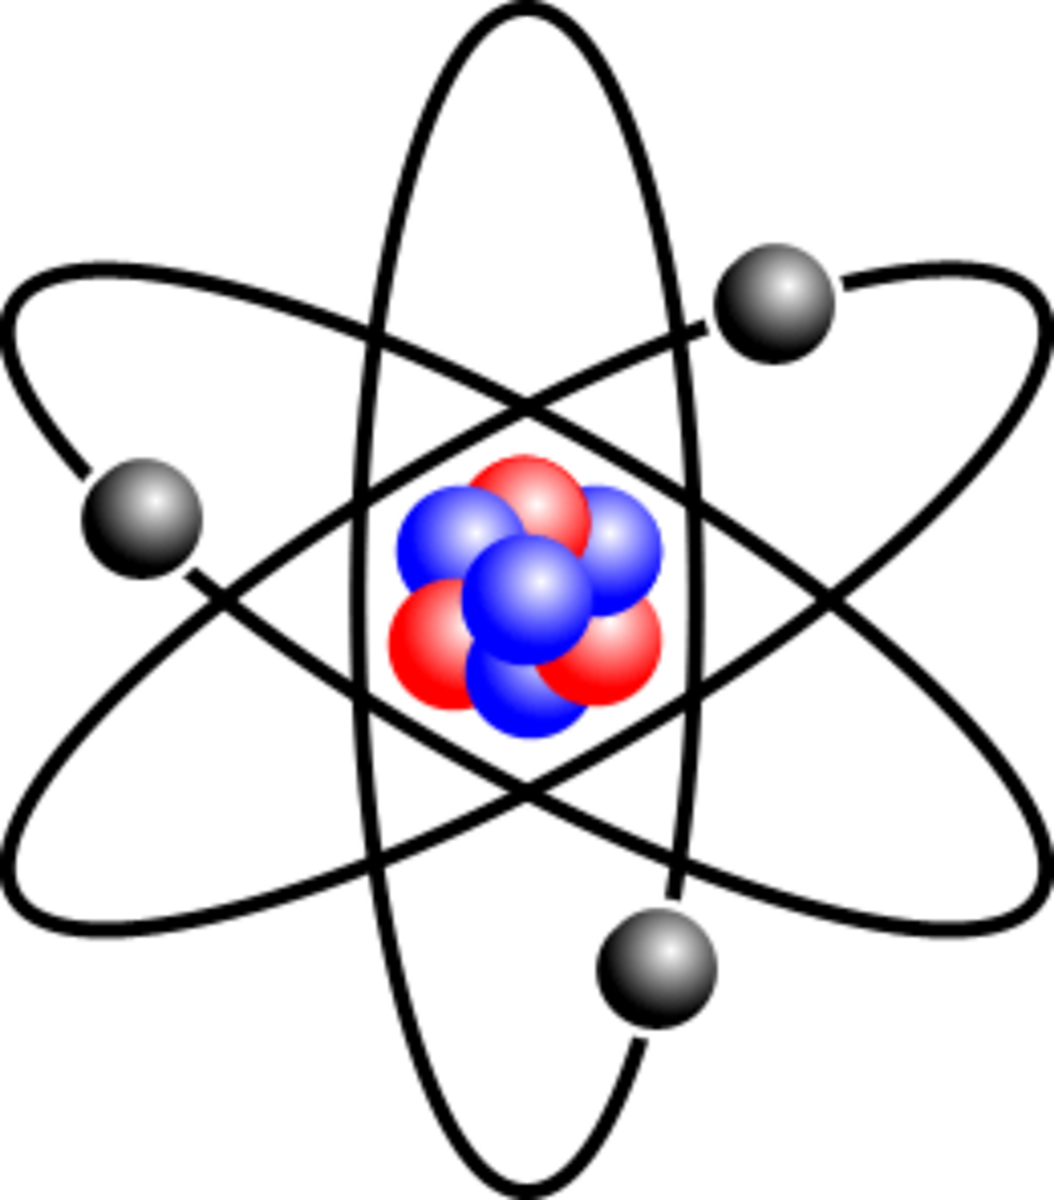 A stylised Lithium atom. Whilst this is instantly recognisable as an atom, no atom actually looks like this!